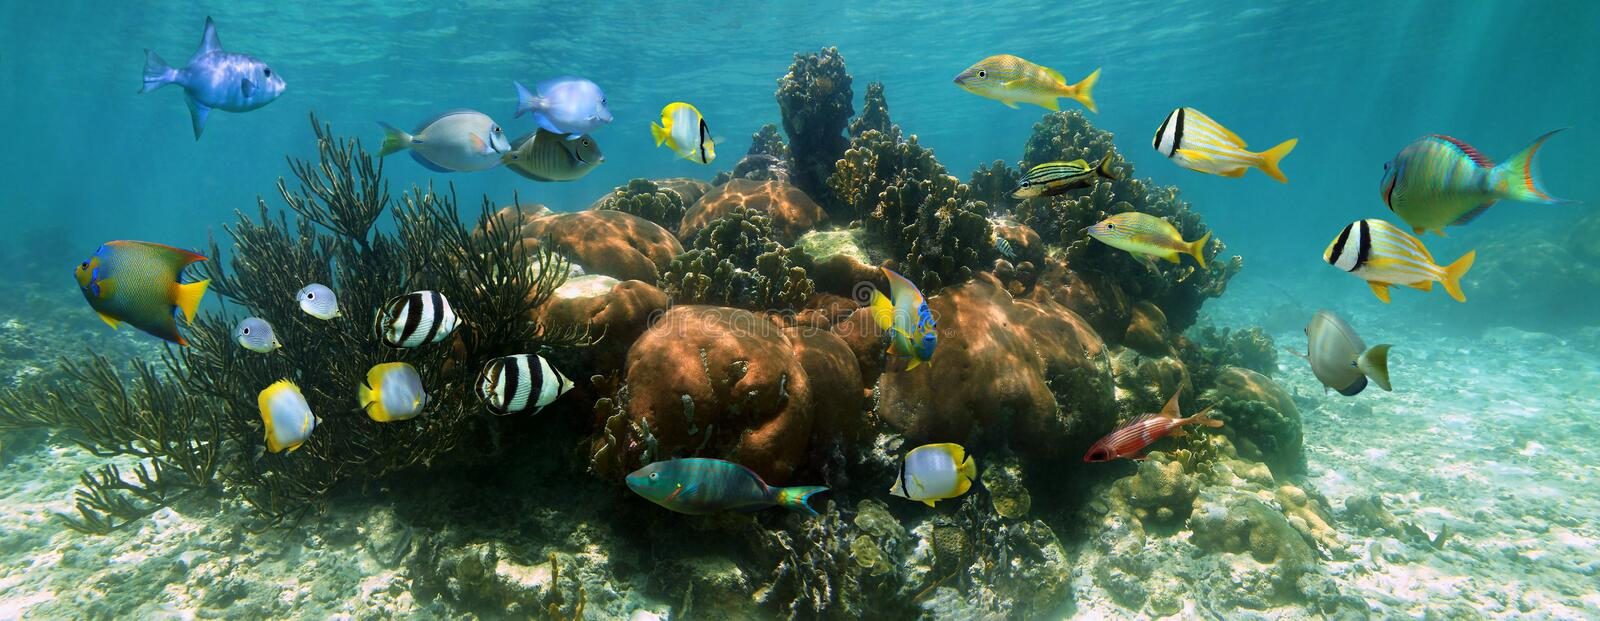 Underwater panorama in a coral reef royalty free stock image